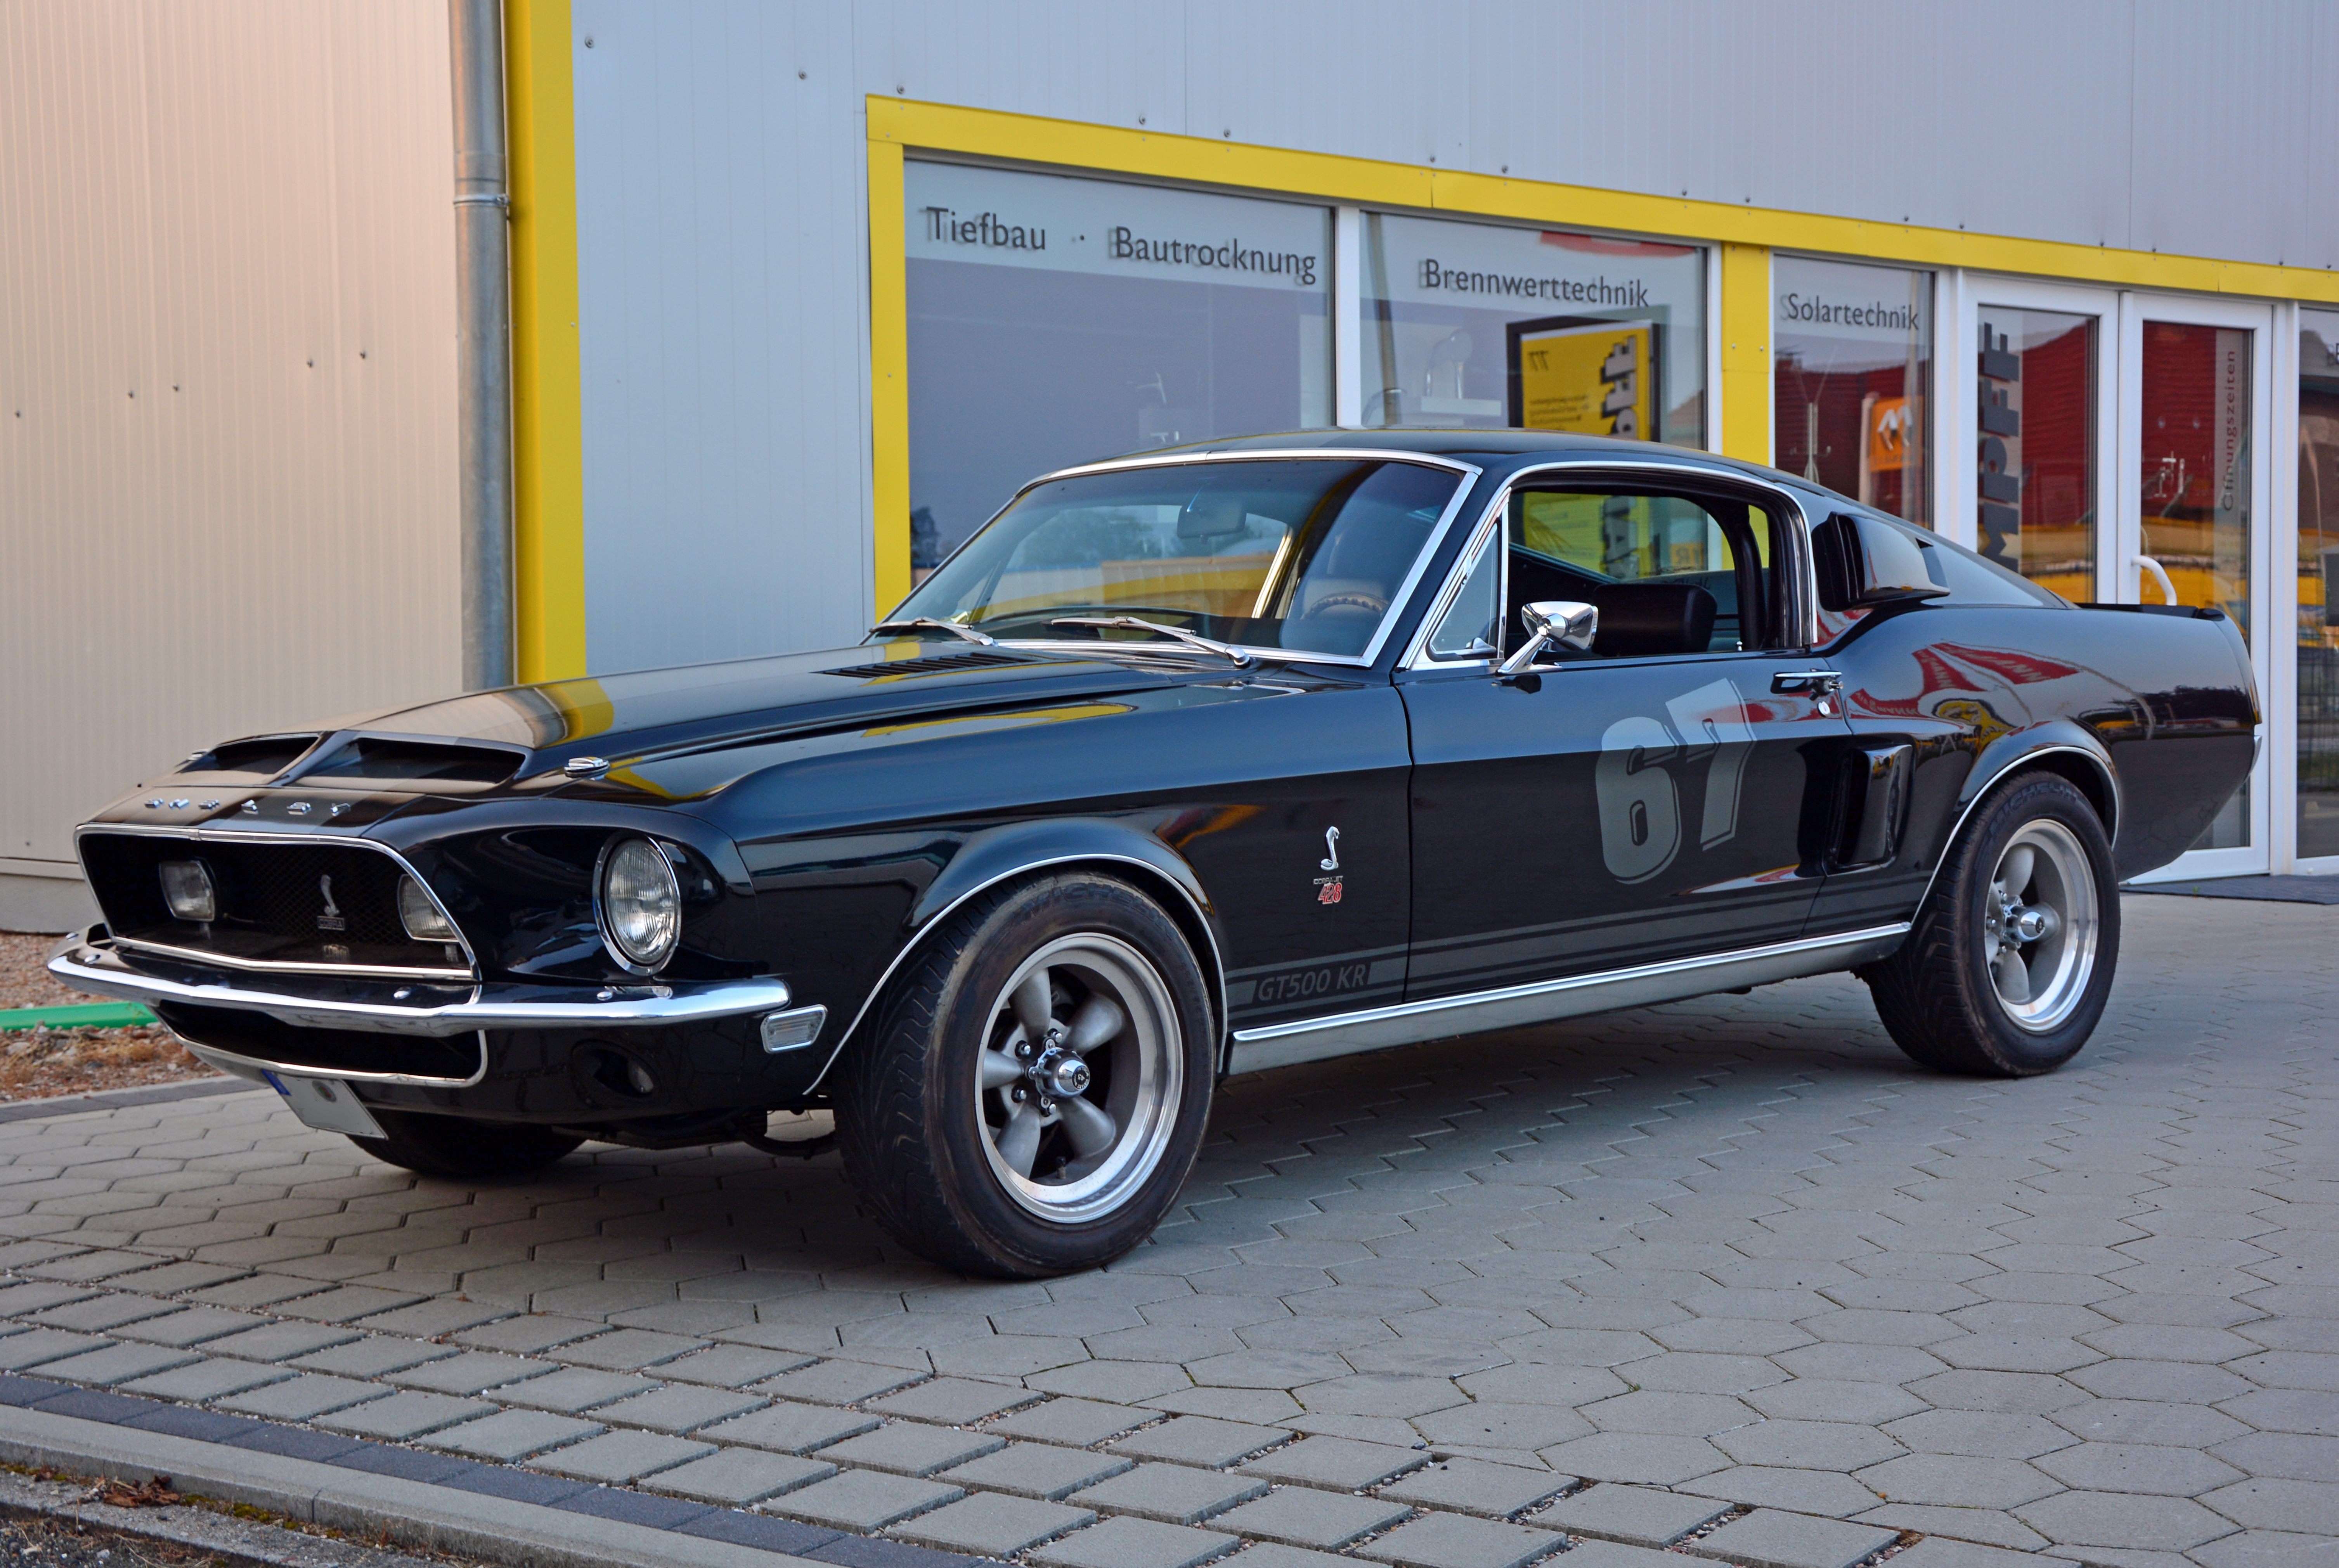 Ford Mustang Shelby GT 500 KR - More information